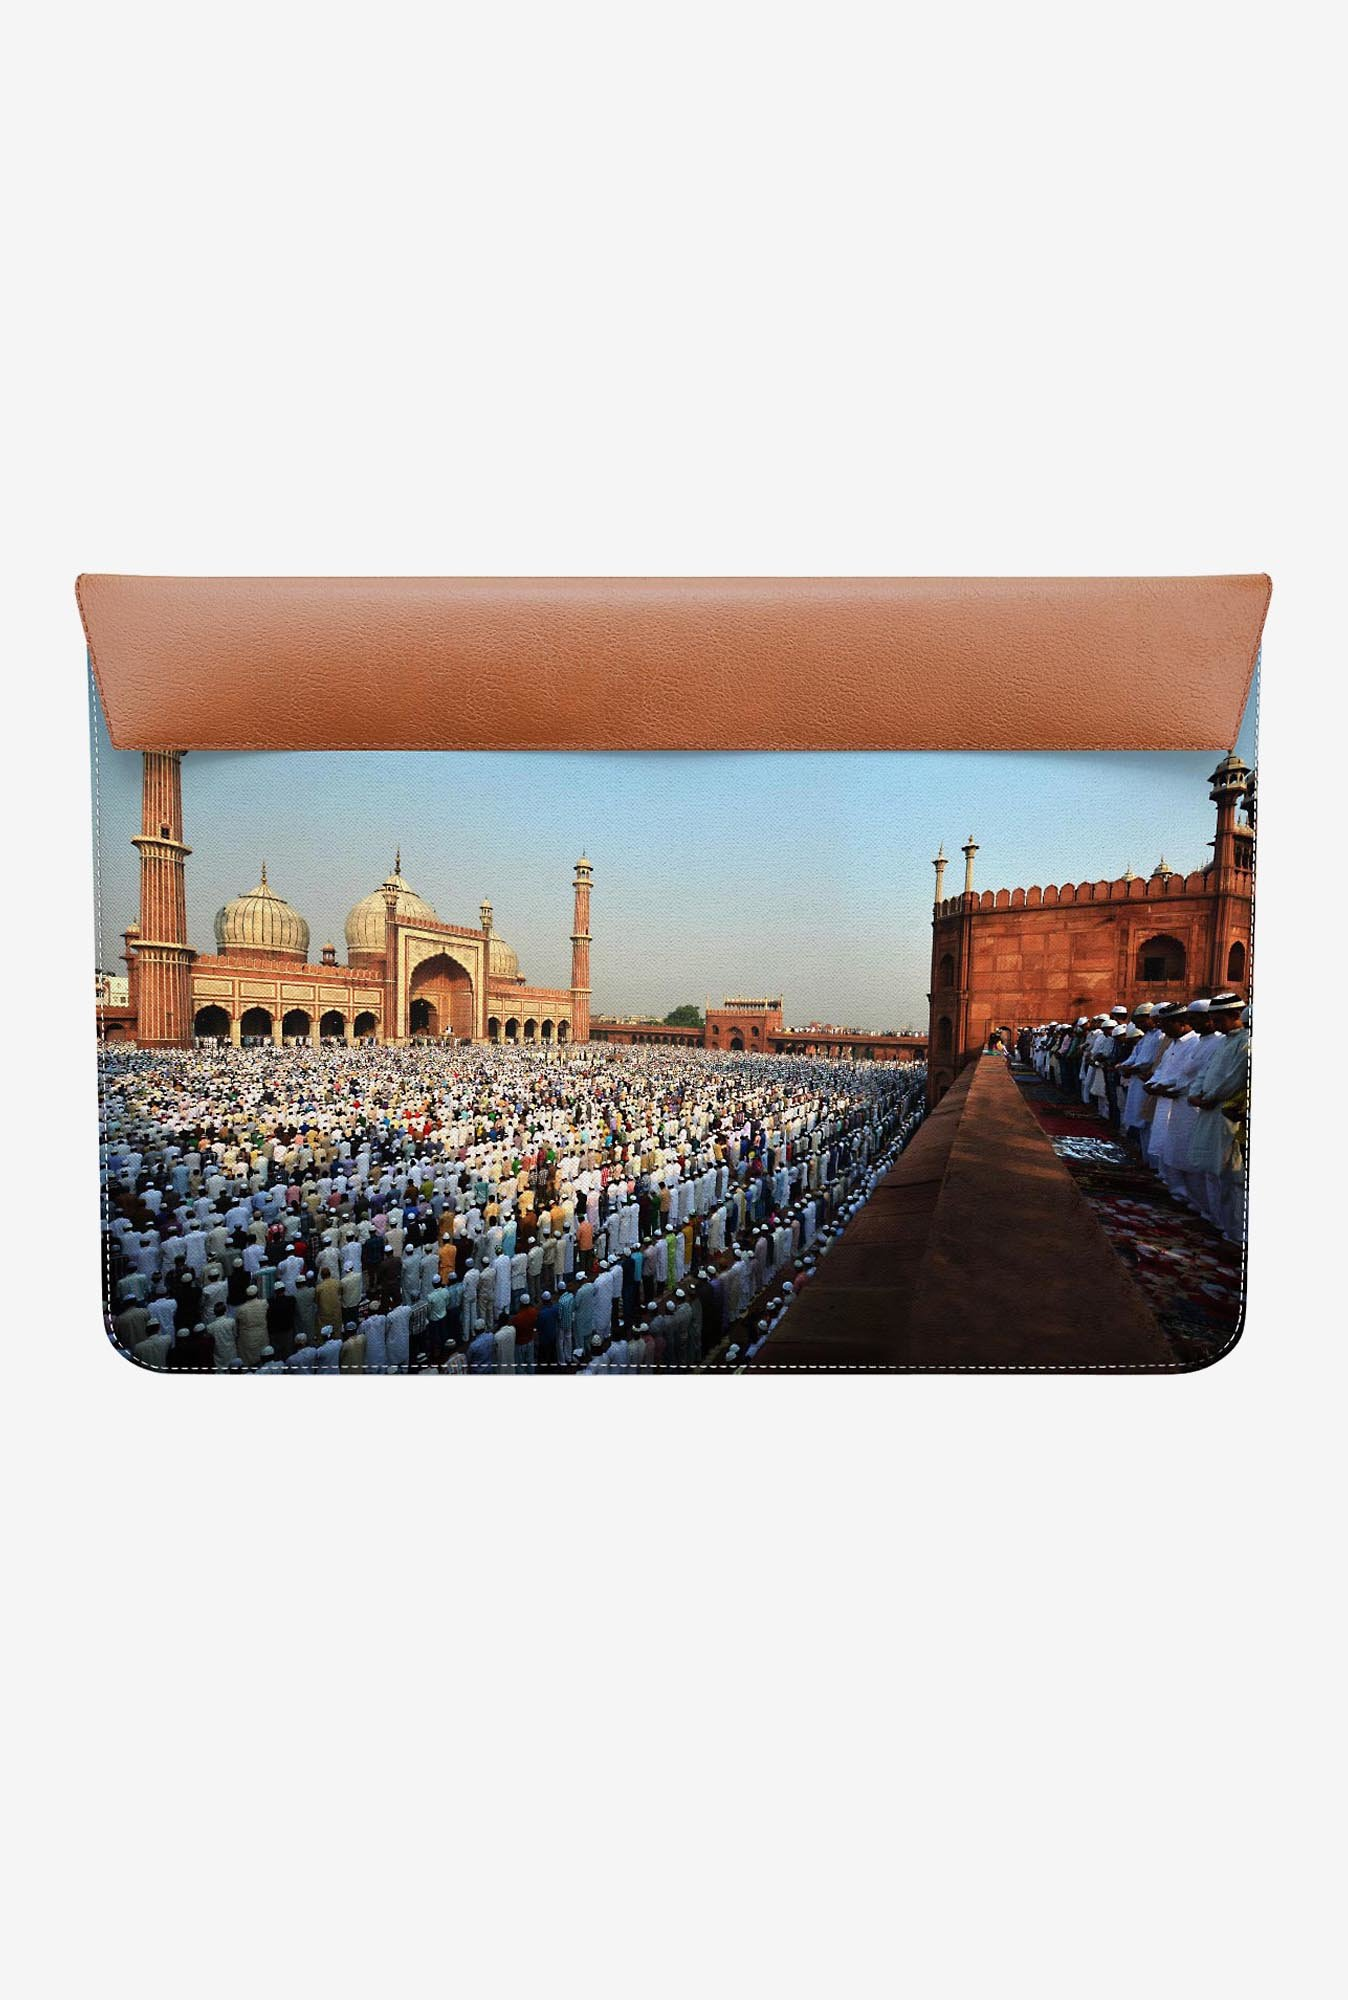 "DailyObjects Jama Masjid MacBook Air 13"" Envelope Sleeve"